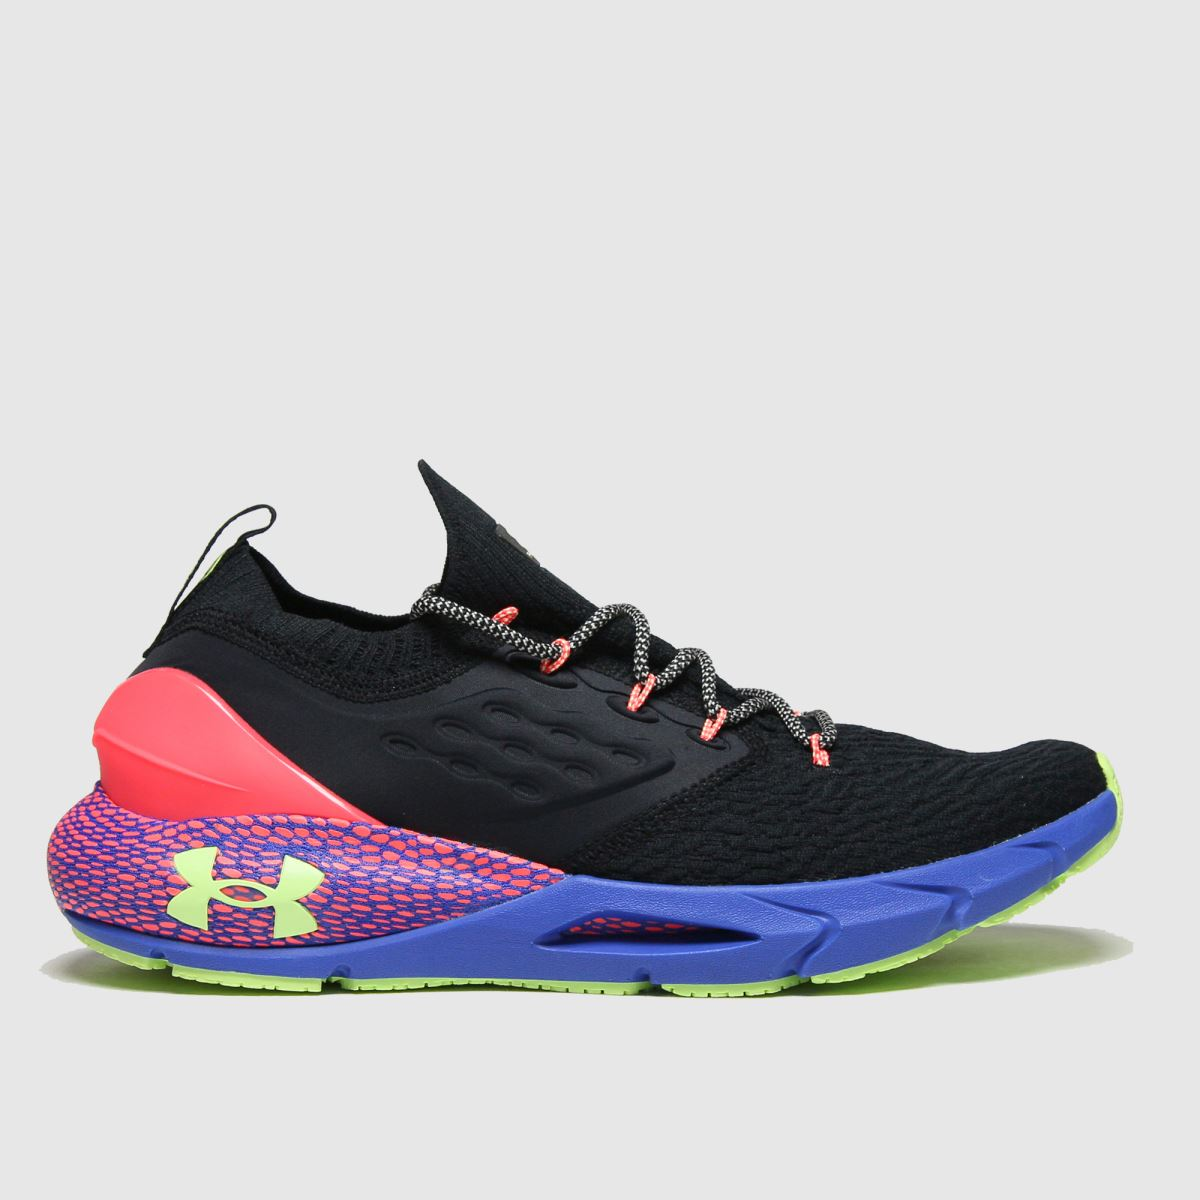 Under Armour Black And Blue Hovr 2 Cg Reactor Trainers